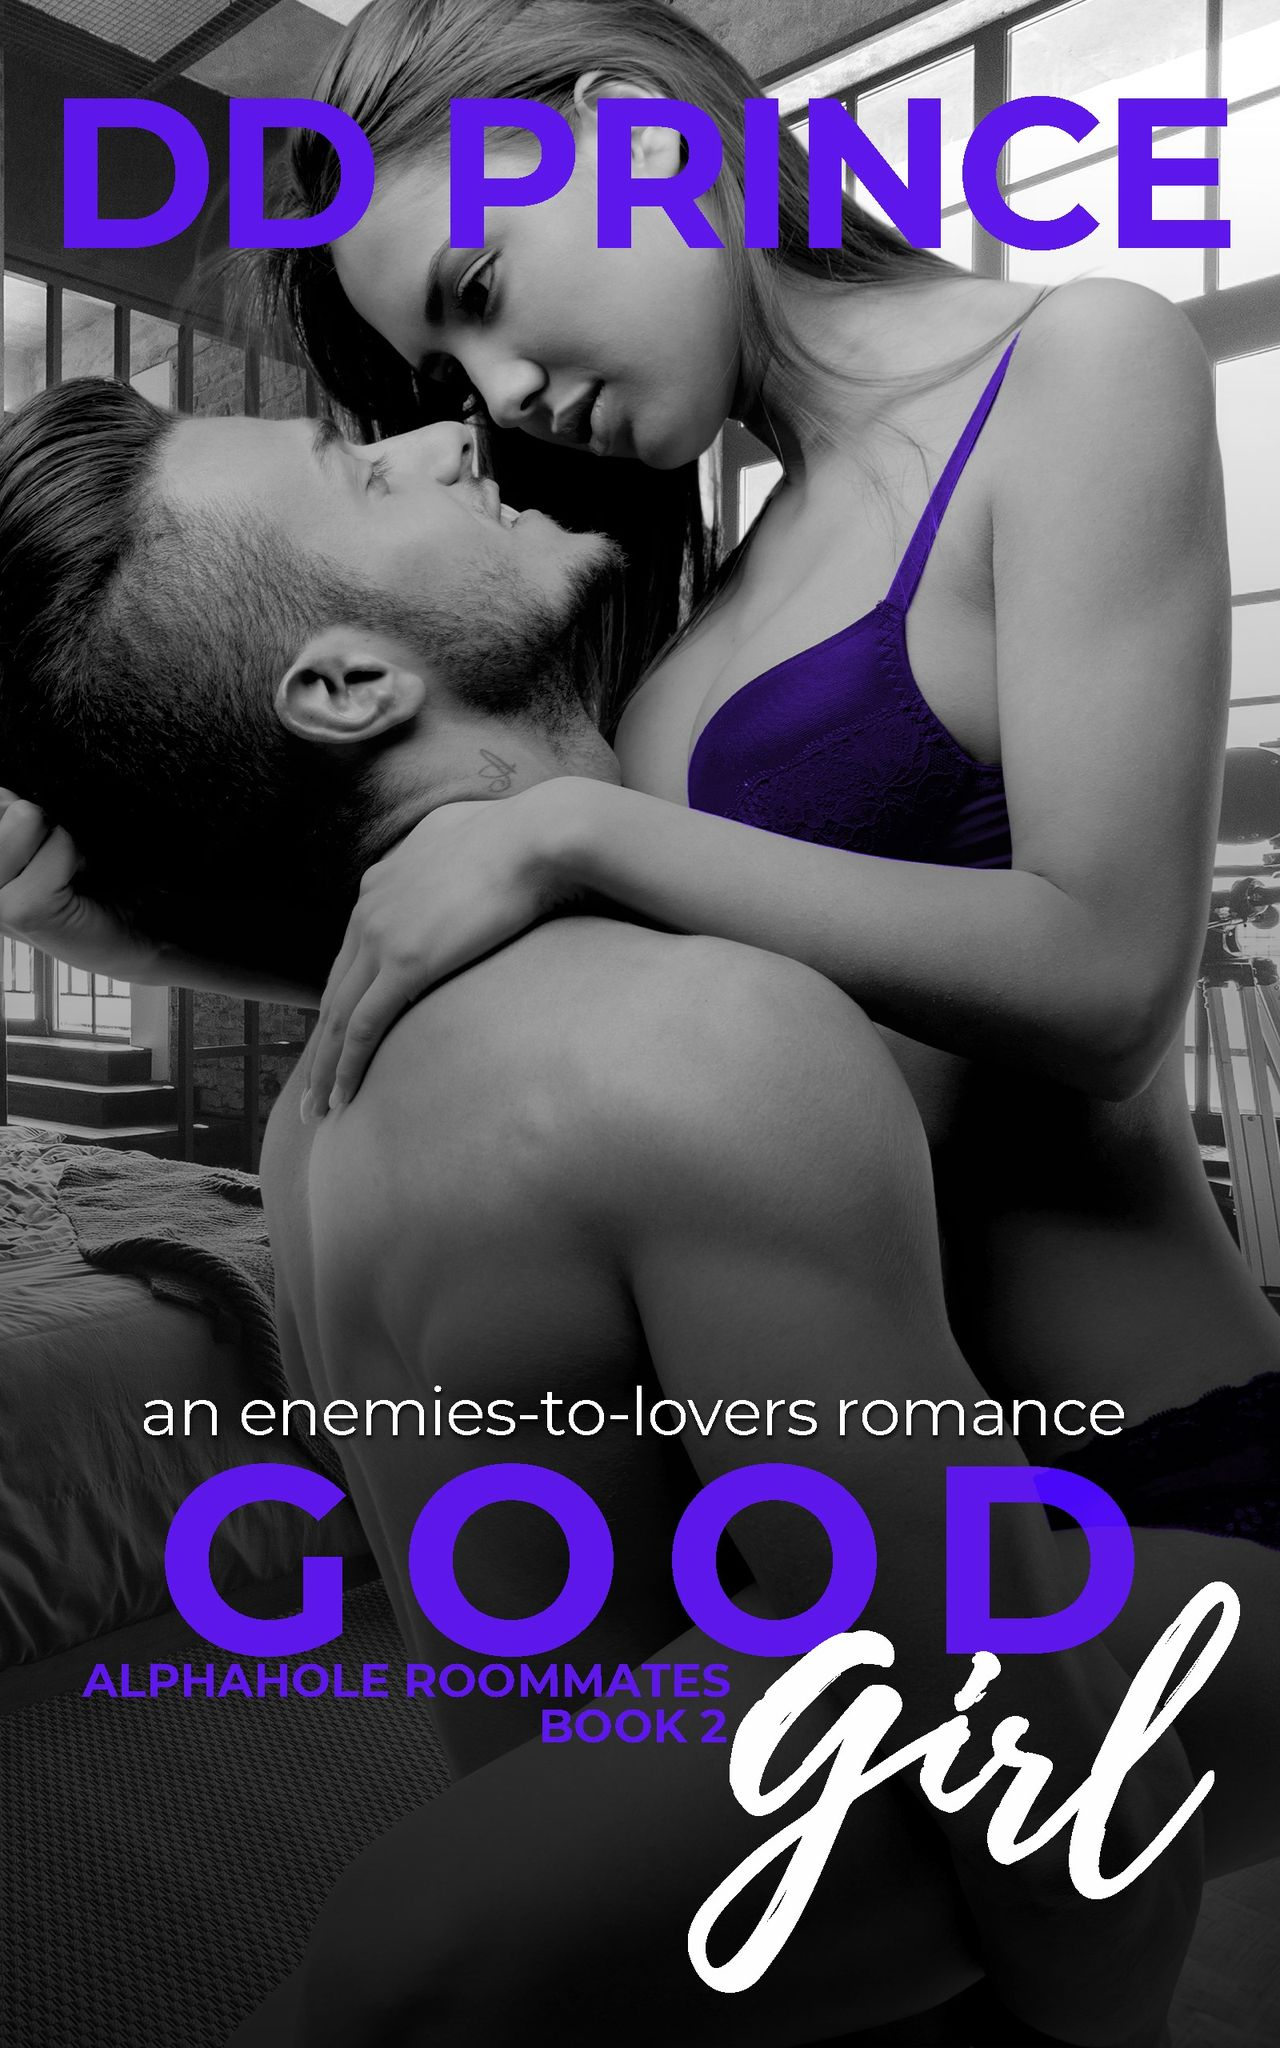 Review: Good Girl by DD Prince